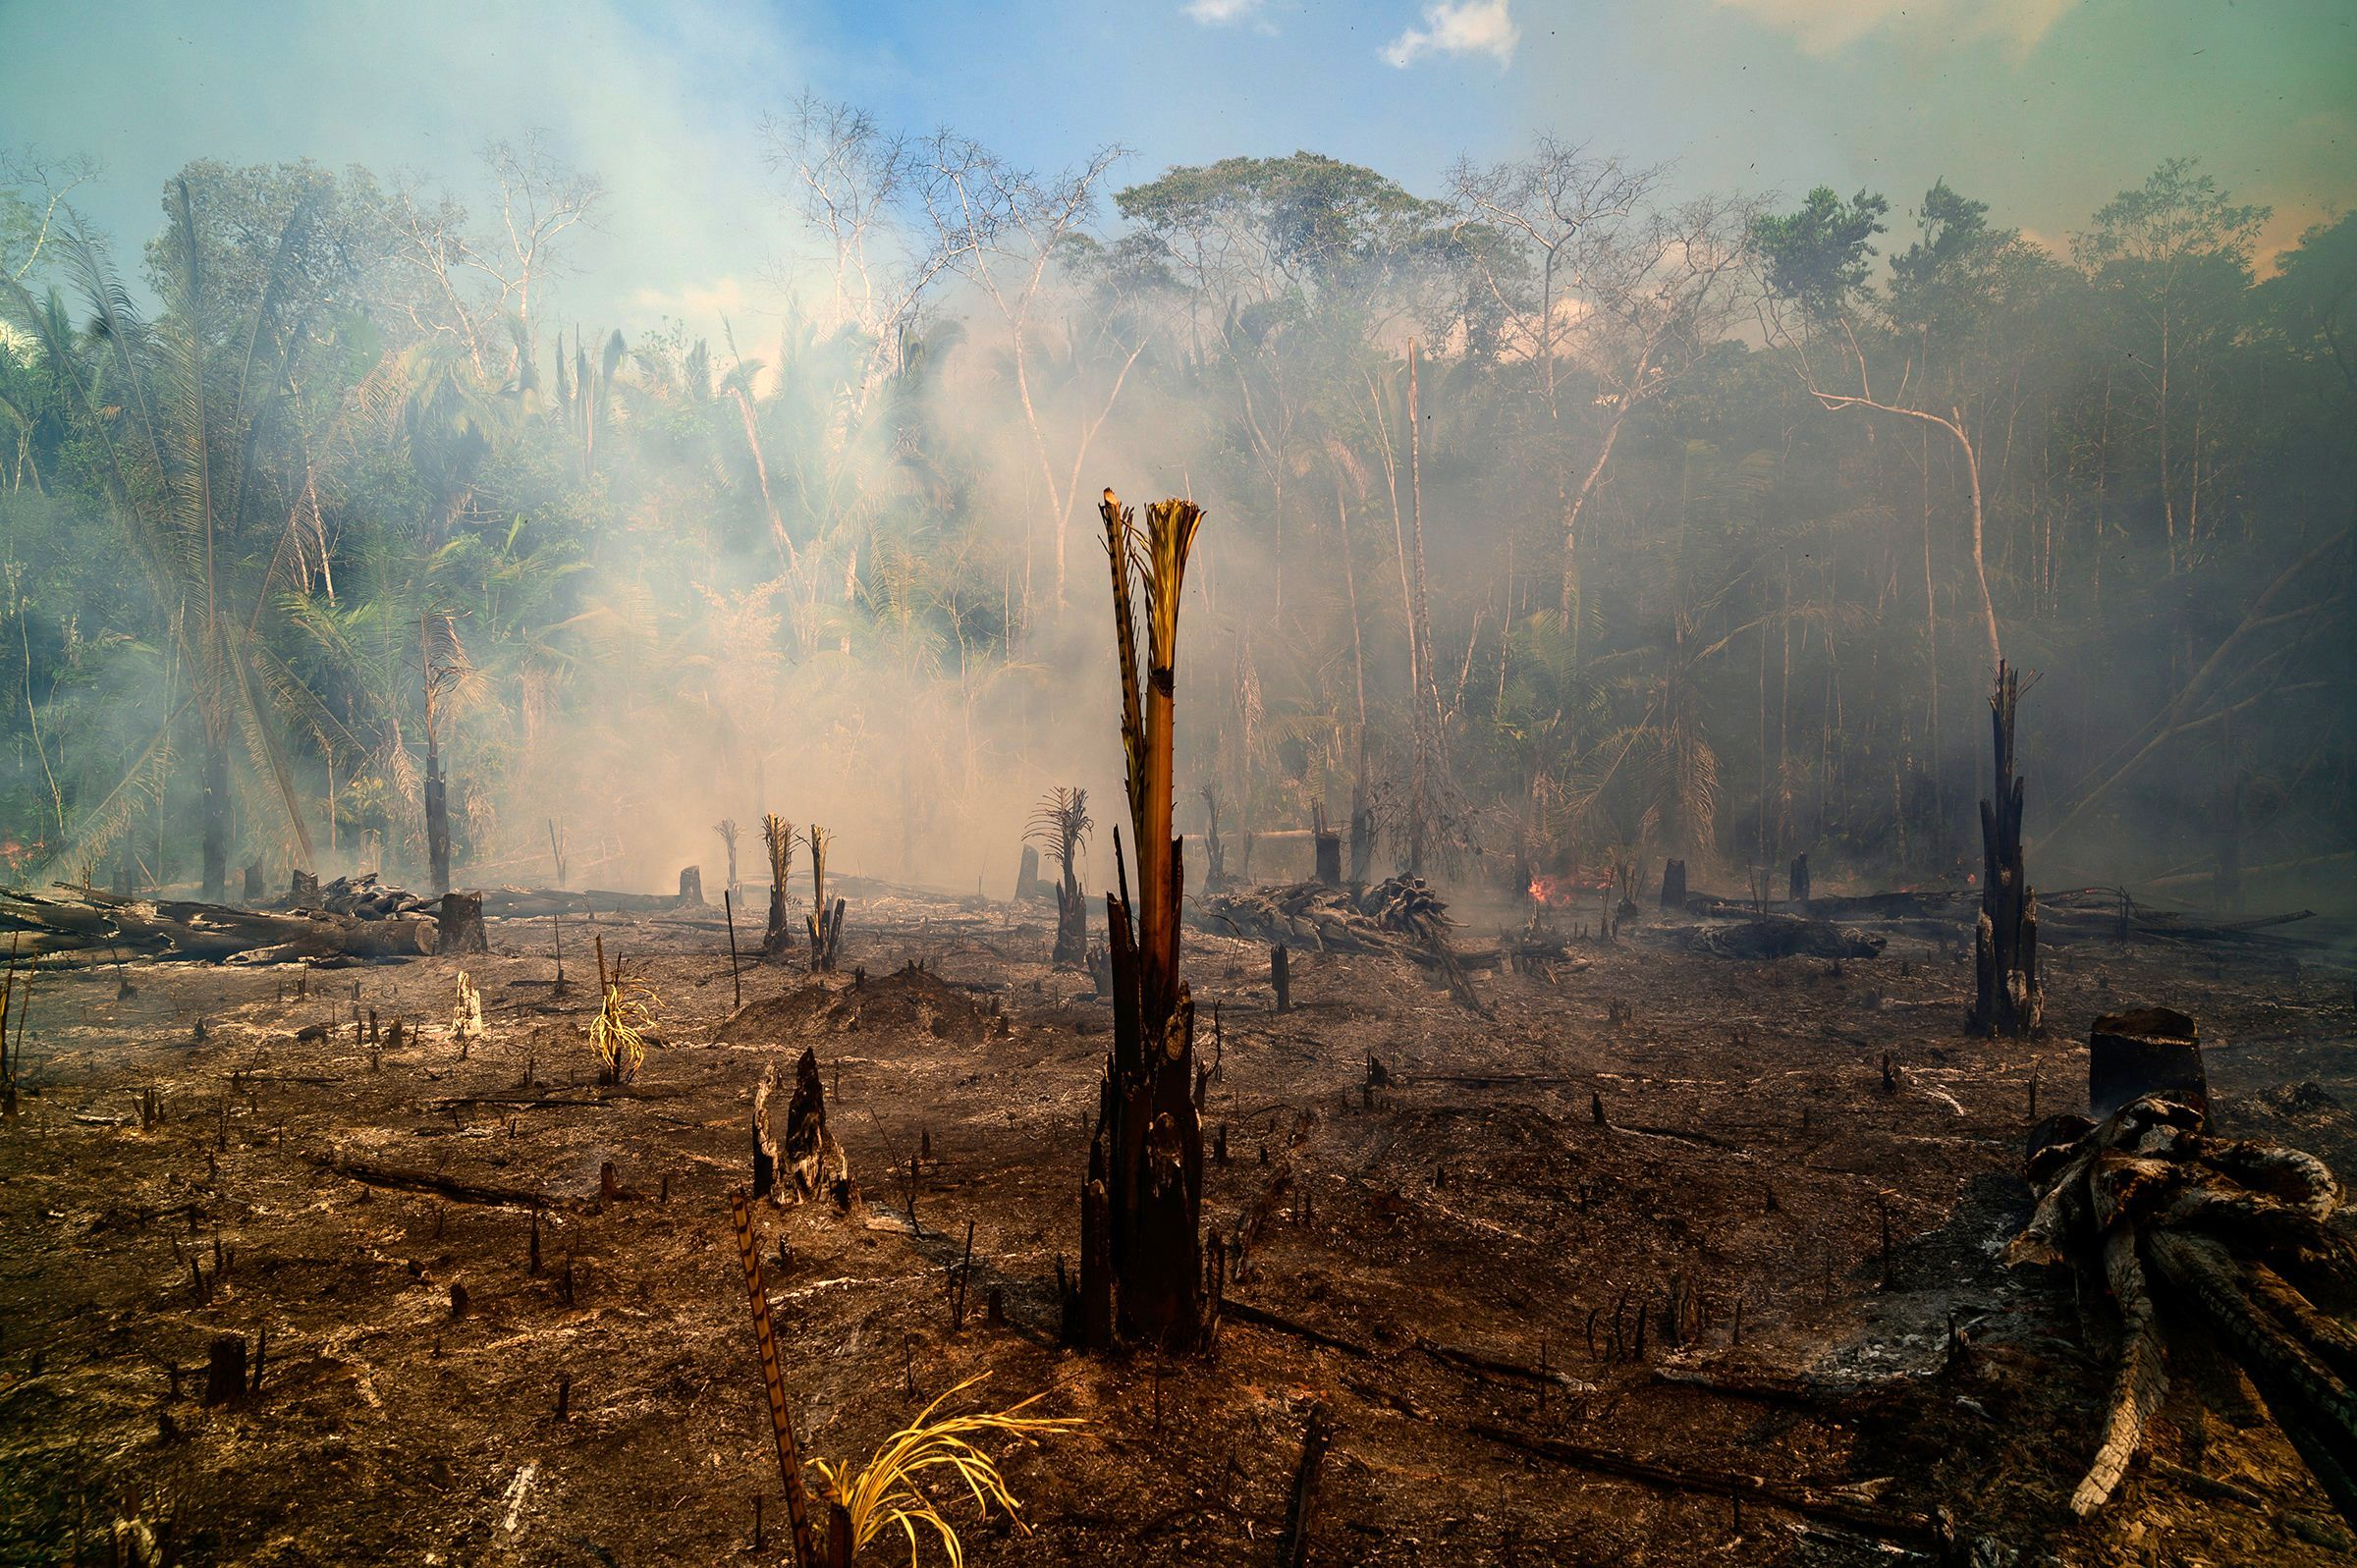 Ashen trees near Realidade, Brazil, on Aug. 26. August was burning season in the Amazon, where ranchers use the dry weather to prepare land for crops and pasture.